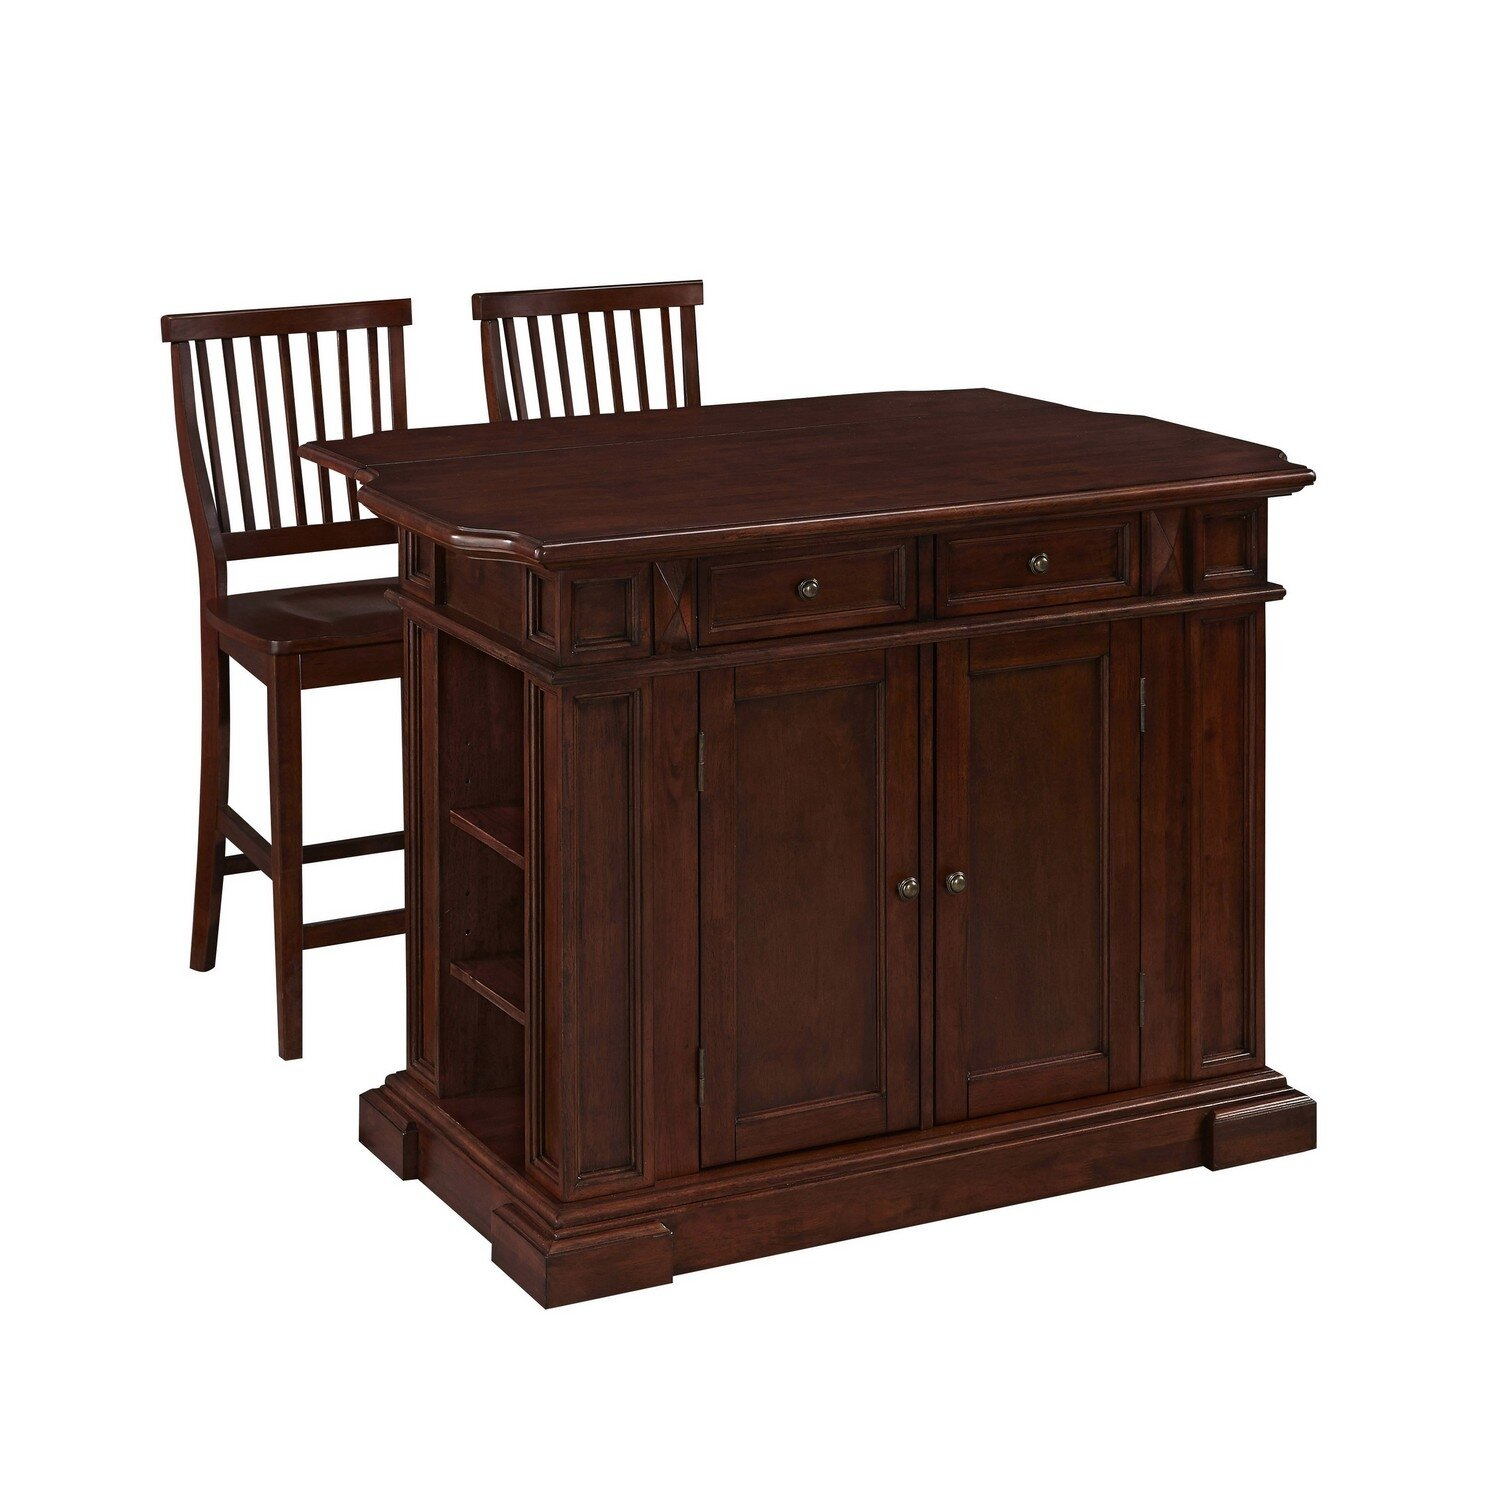 Home styles americana kitchen island set reviews wayfair Homestyles com